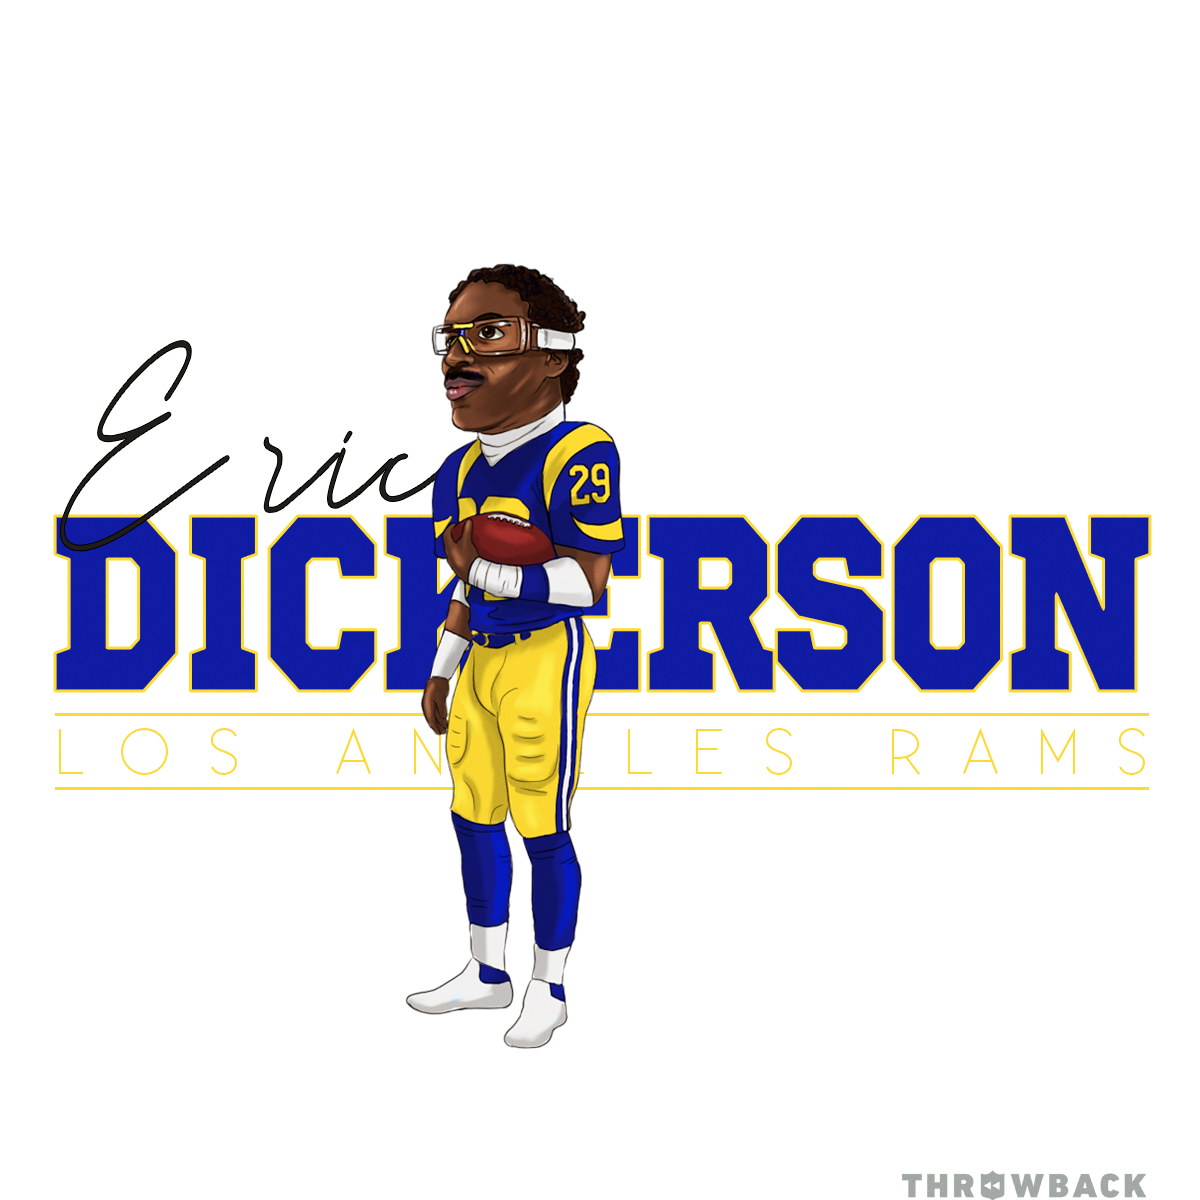 180815_ERIC-DICKERSON-SINGLE_v02_RW.jpg